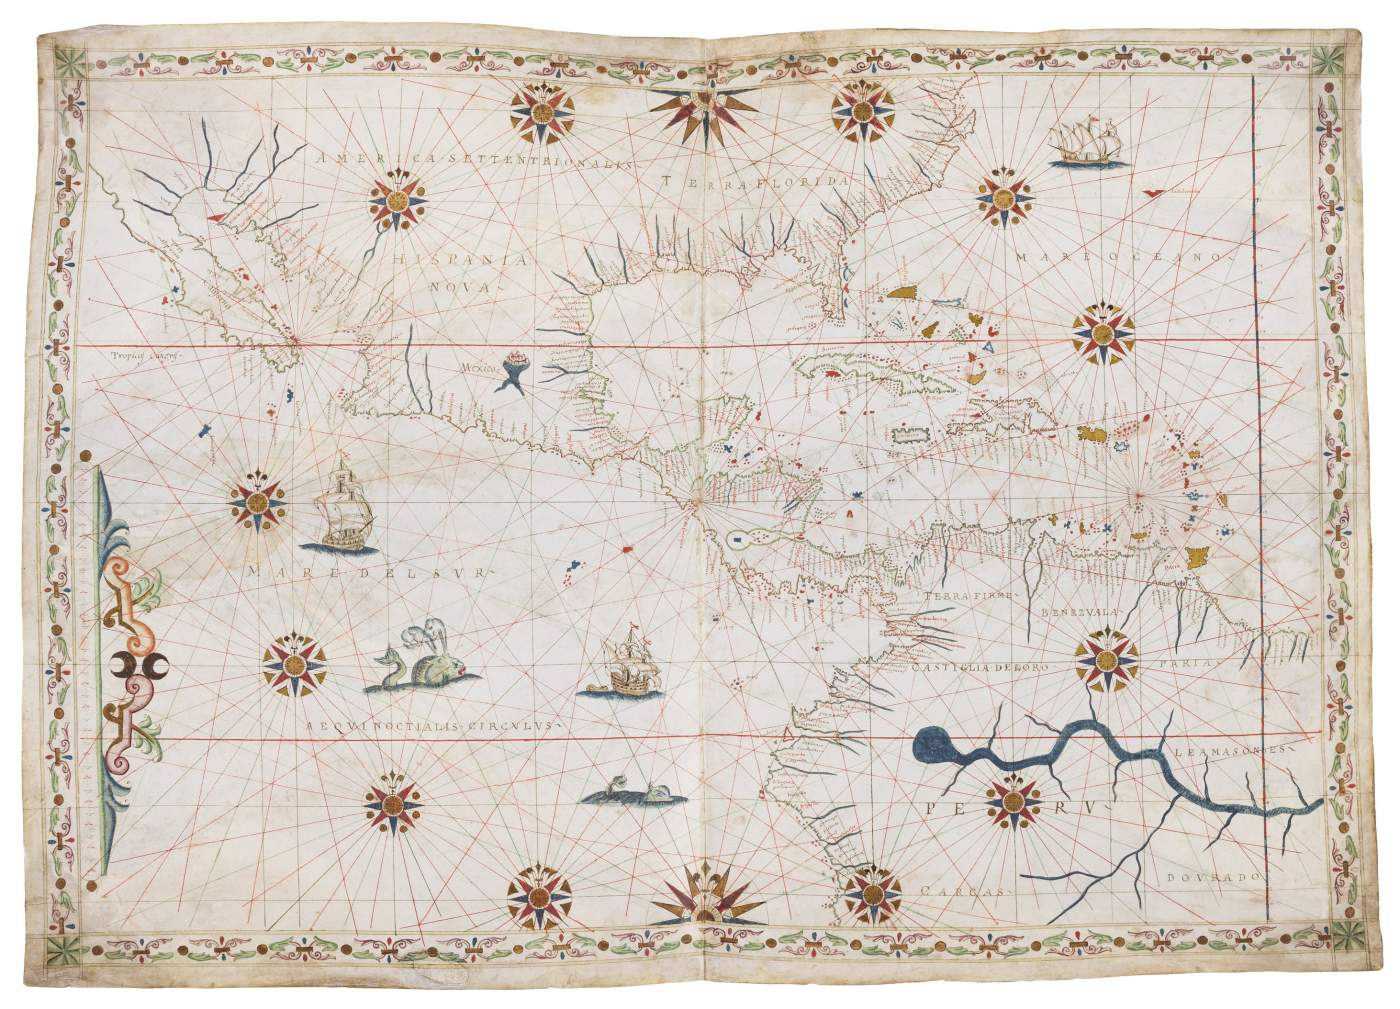 Magnificent Portolan chart of Central America